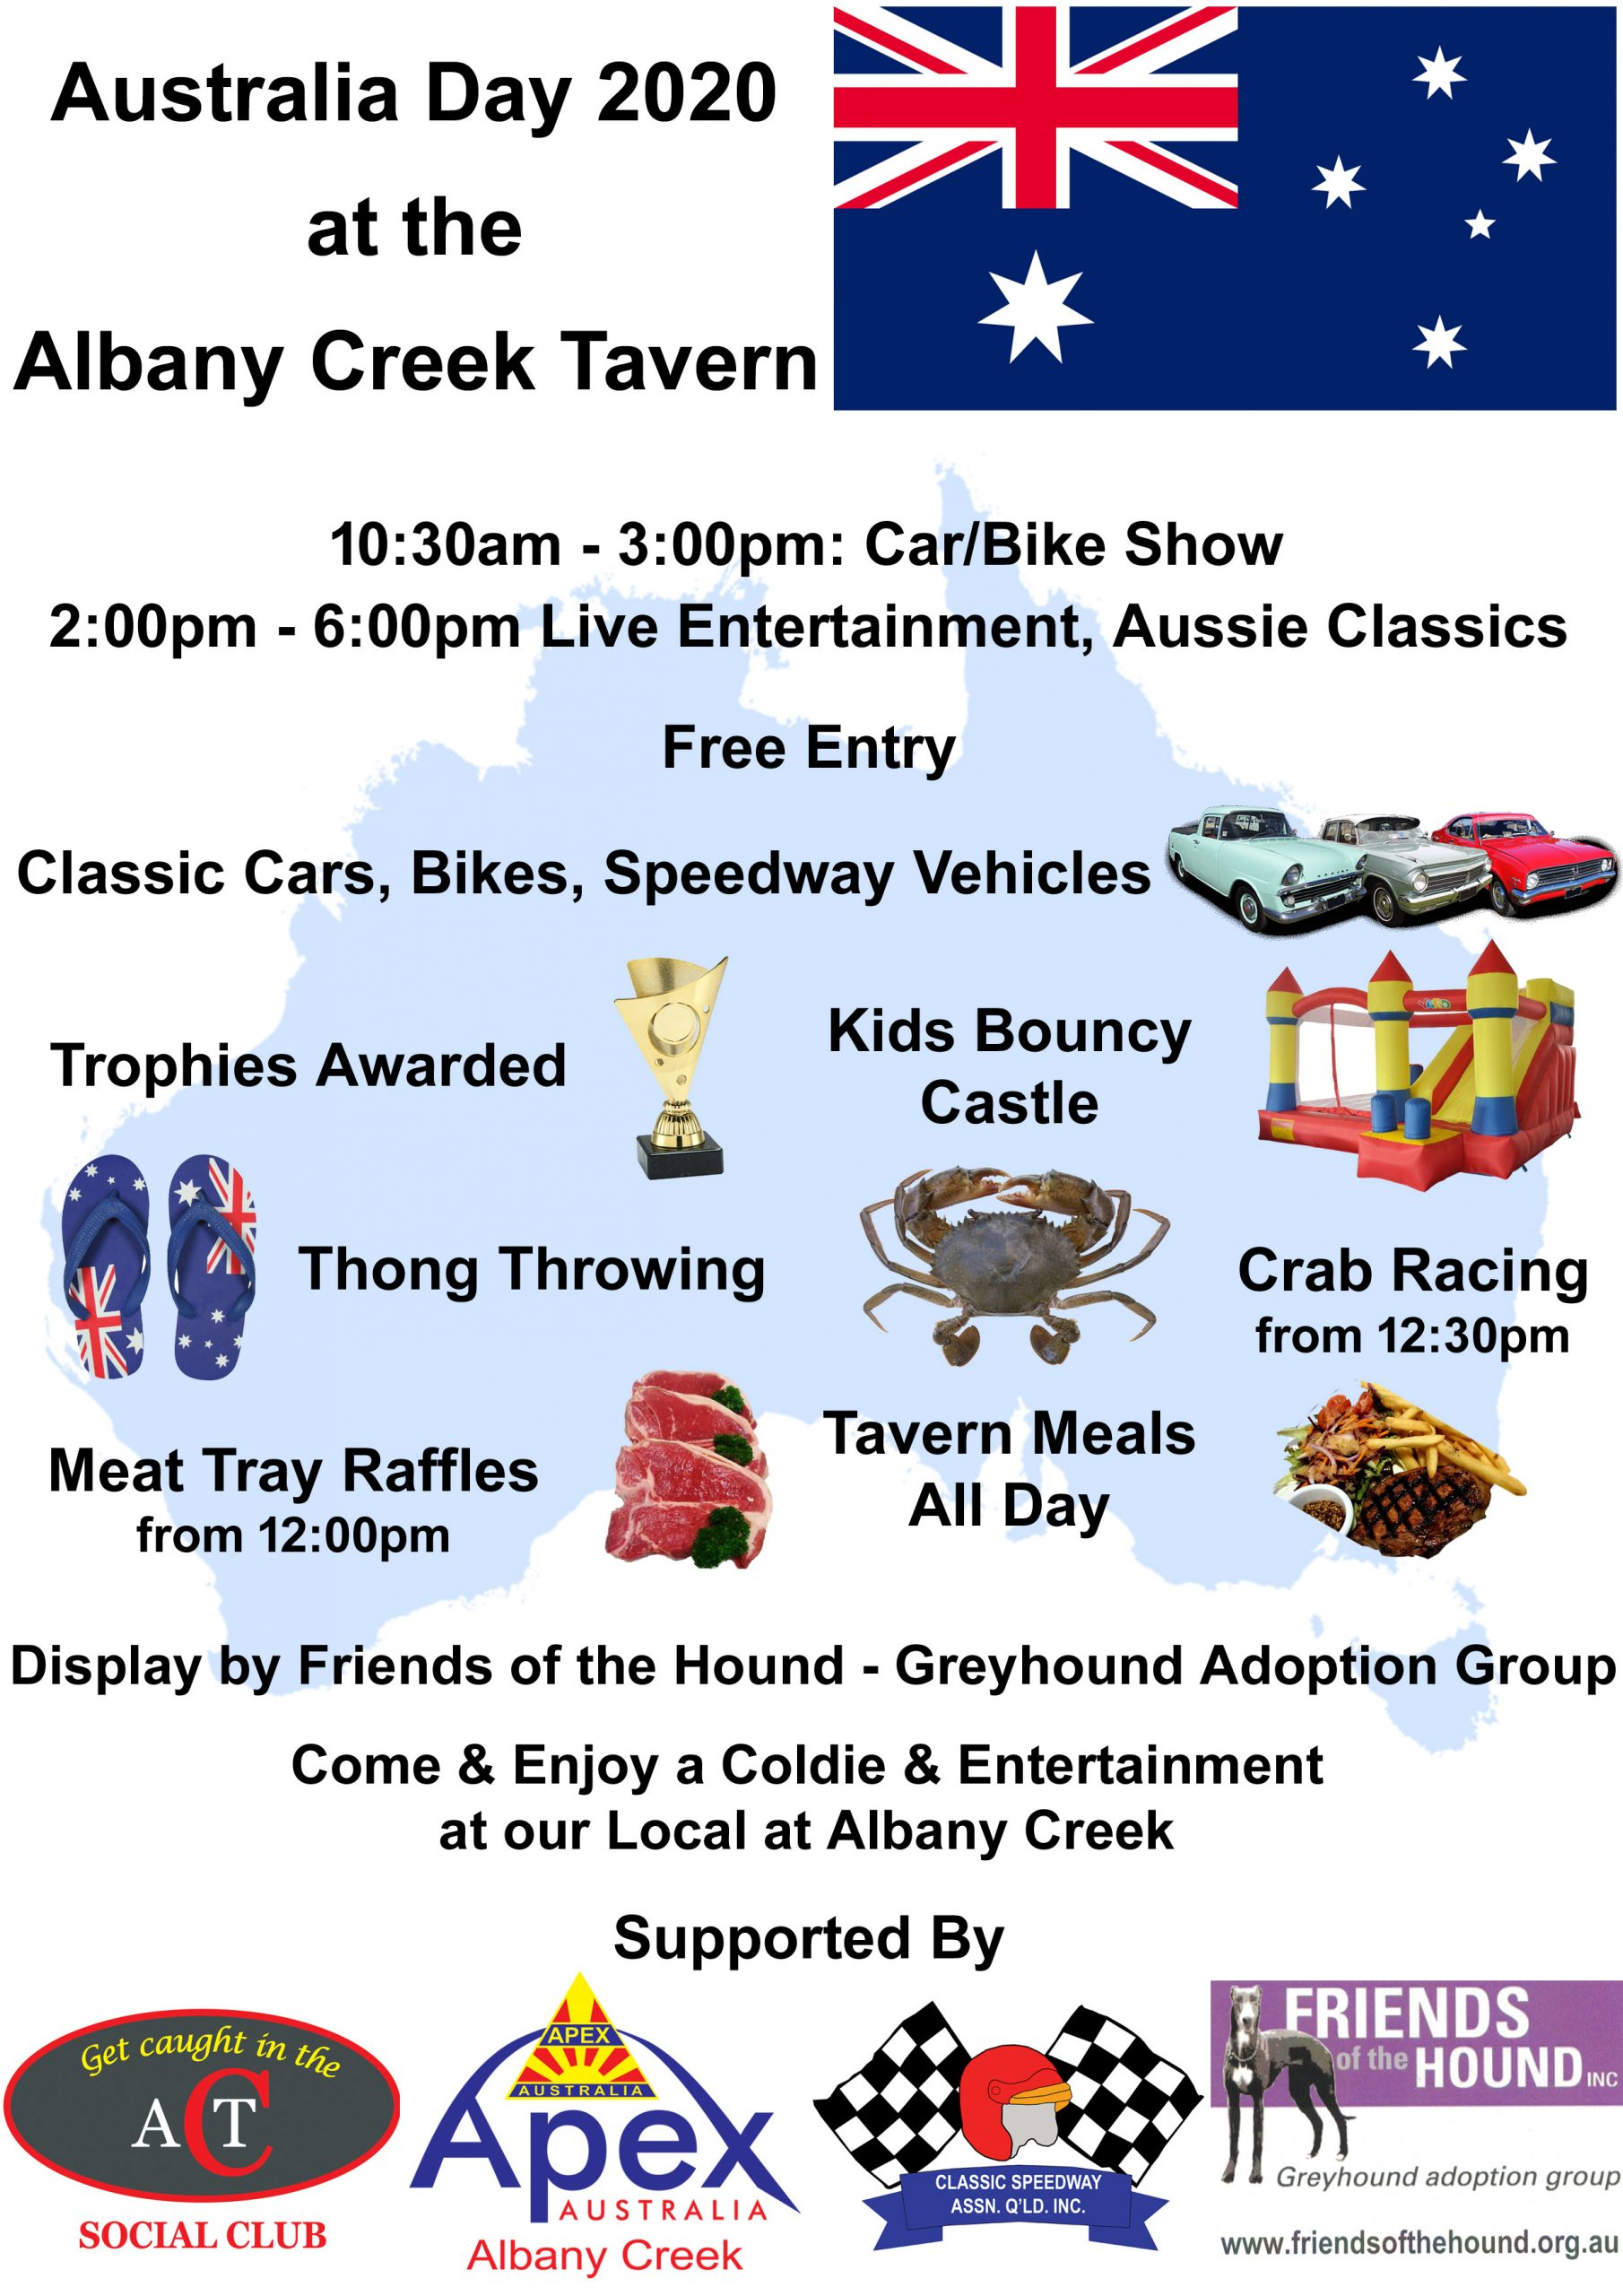 Albany Creek Tavern Family Fun Day @ Albany Creek Tavern